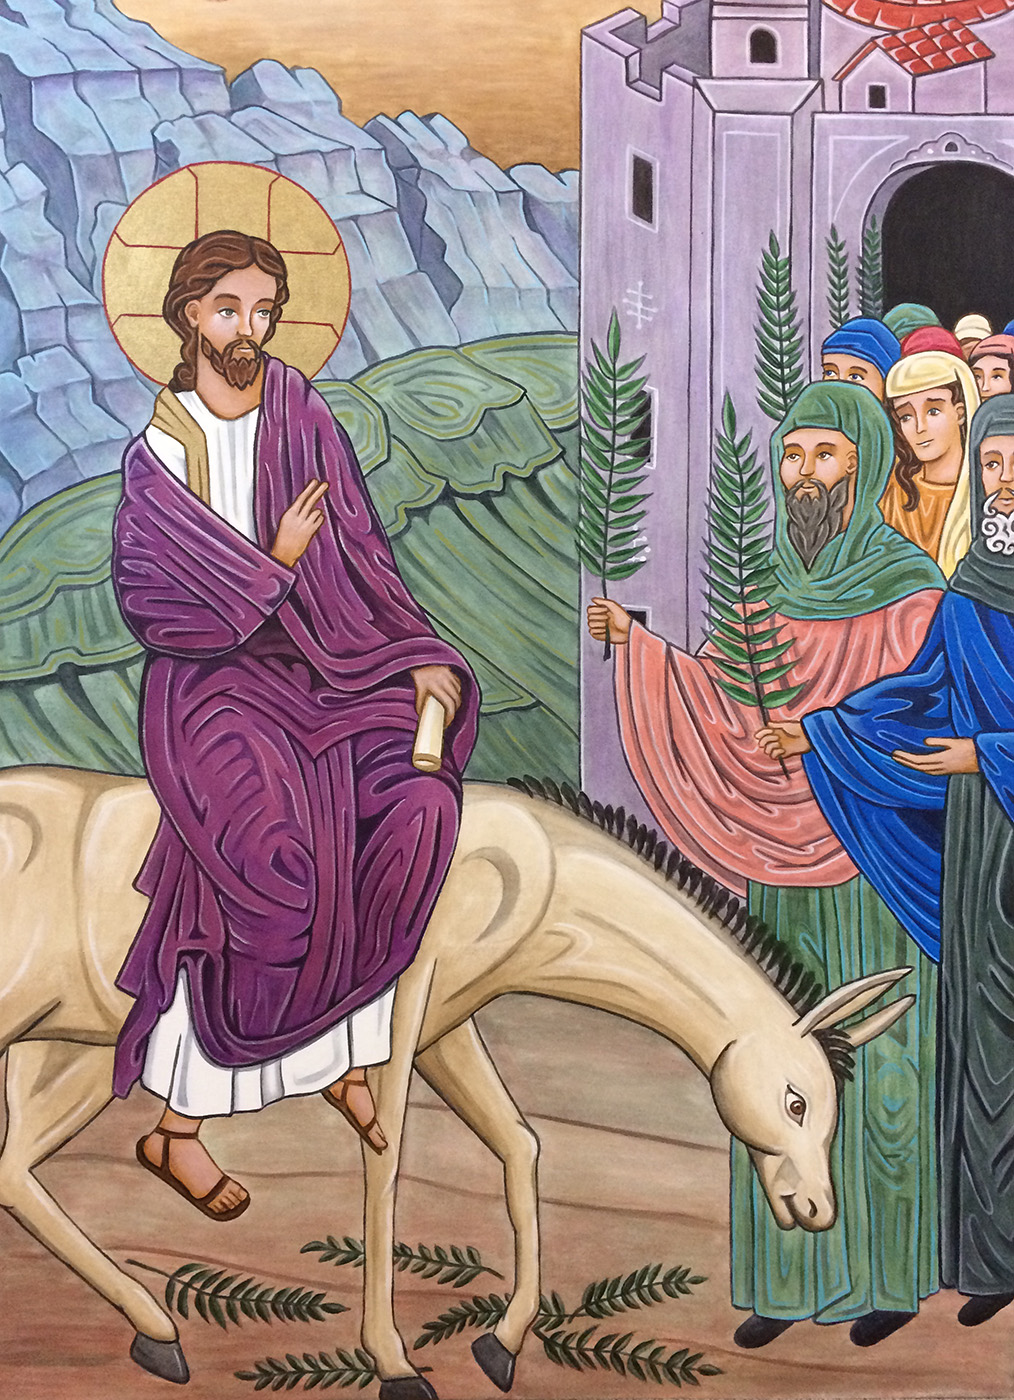 Triumphal Entry - We enter into the icon's passion narrative with an image of Palm Sunday. As Jesus rides into Jerusalem for Passover, crowds greet Him as the Messiah and King of Glory. He holds a scroll, signifying scripture and the fulfillment of prophesies within it.